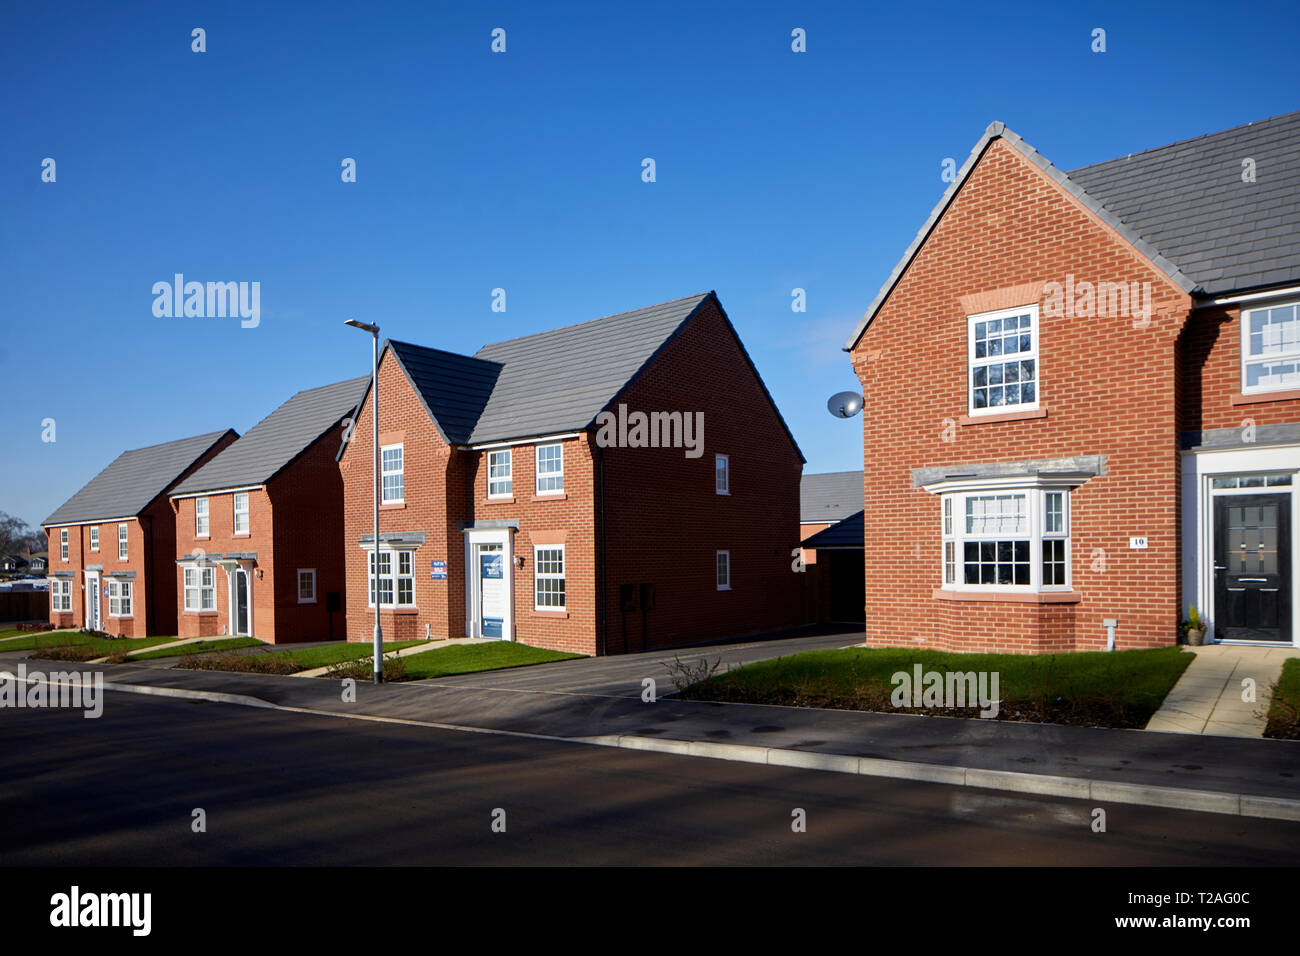 DAVID WILSON HOMES new build houses at  Black Firs Park, Congleton in Cheshire - Stock Image